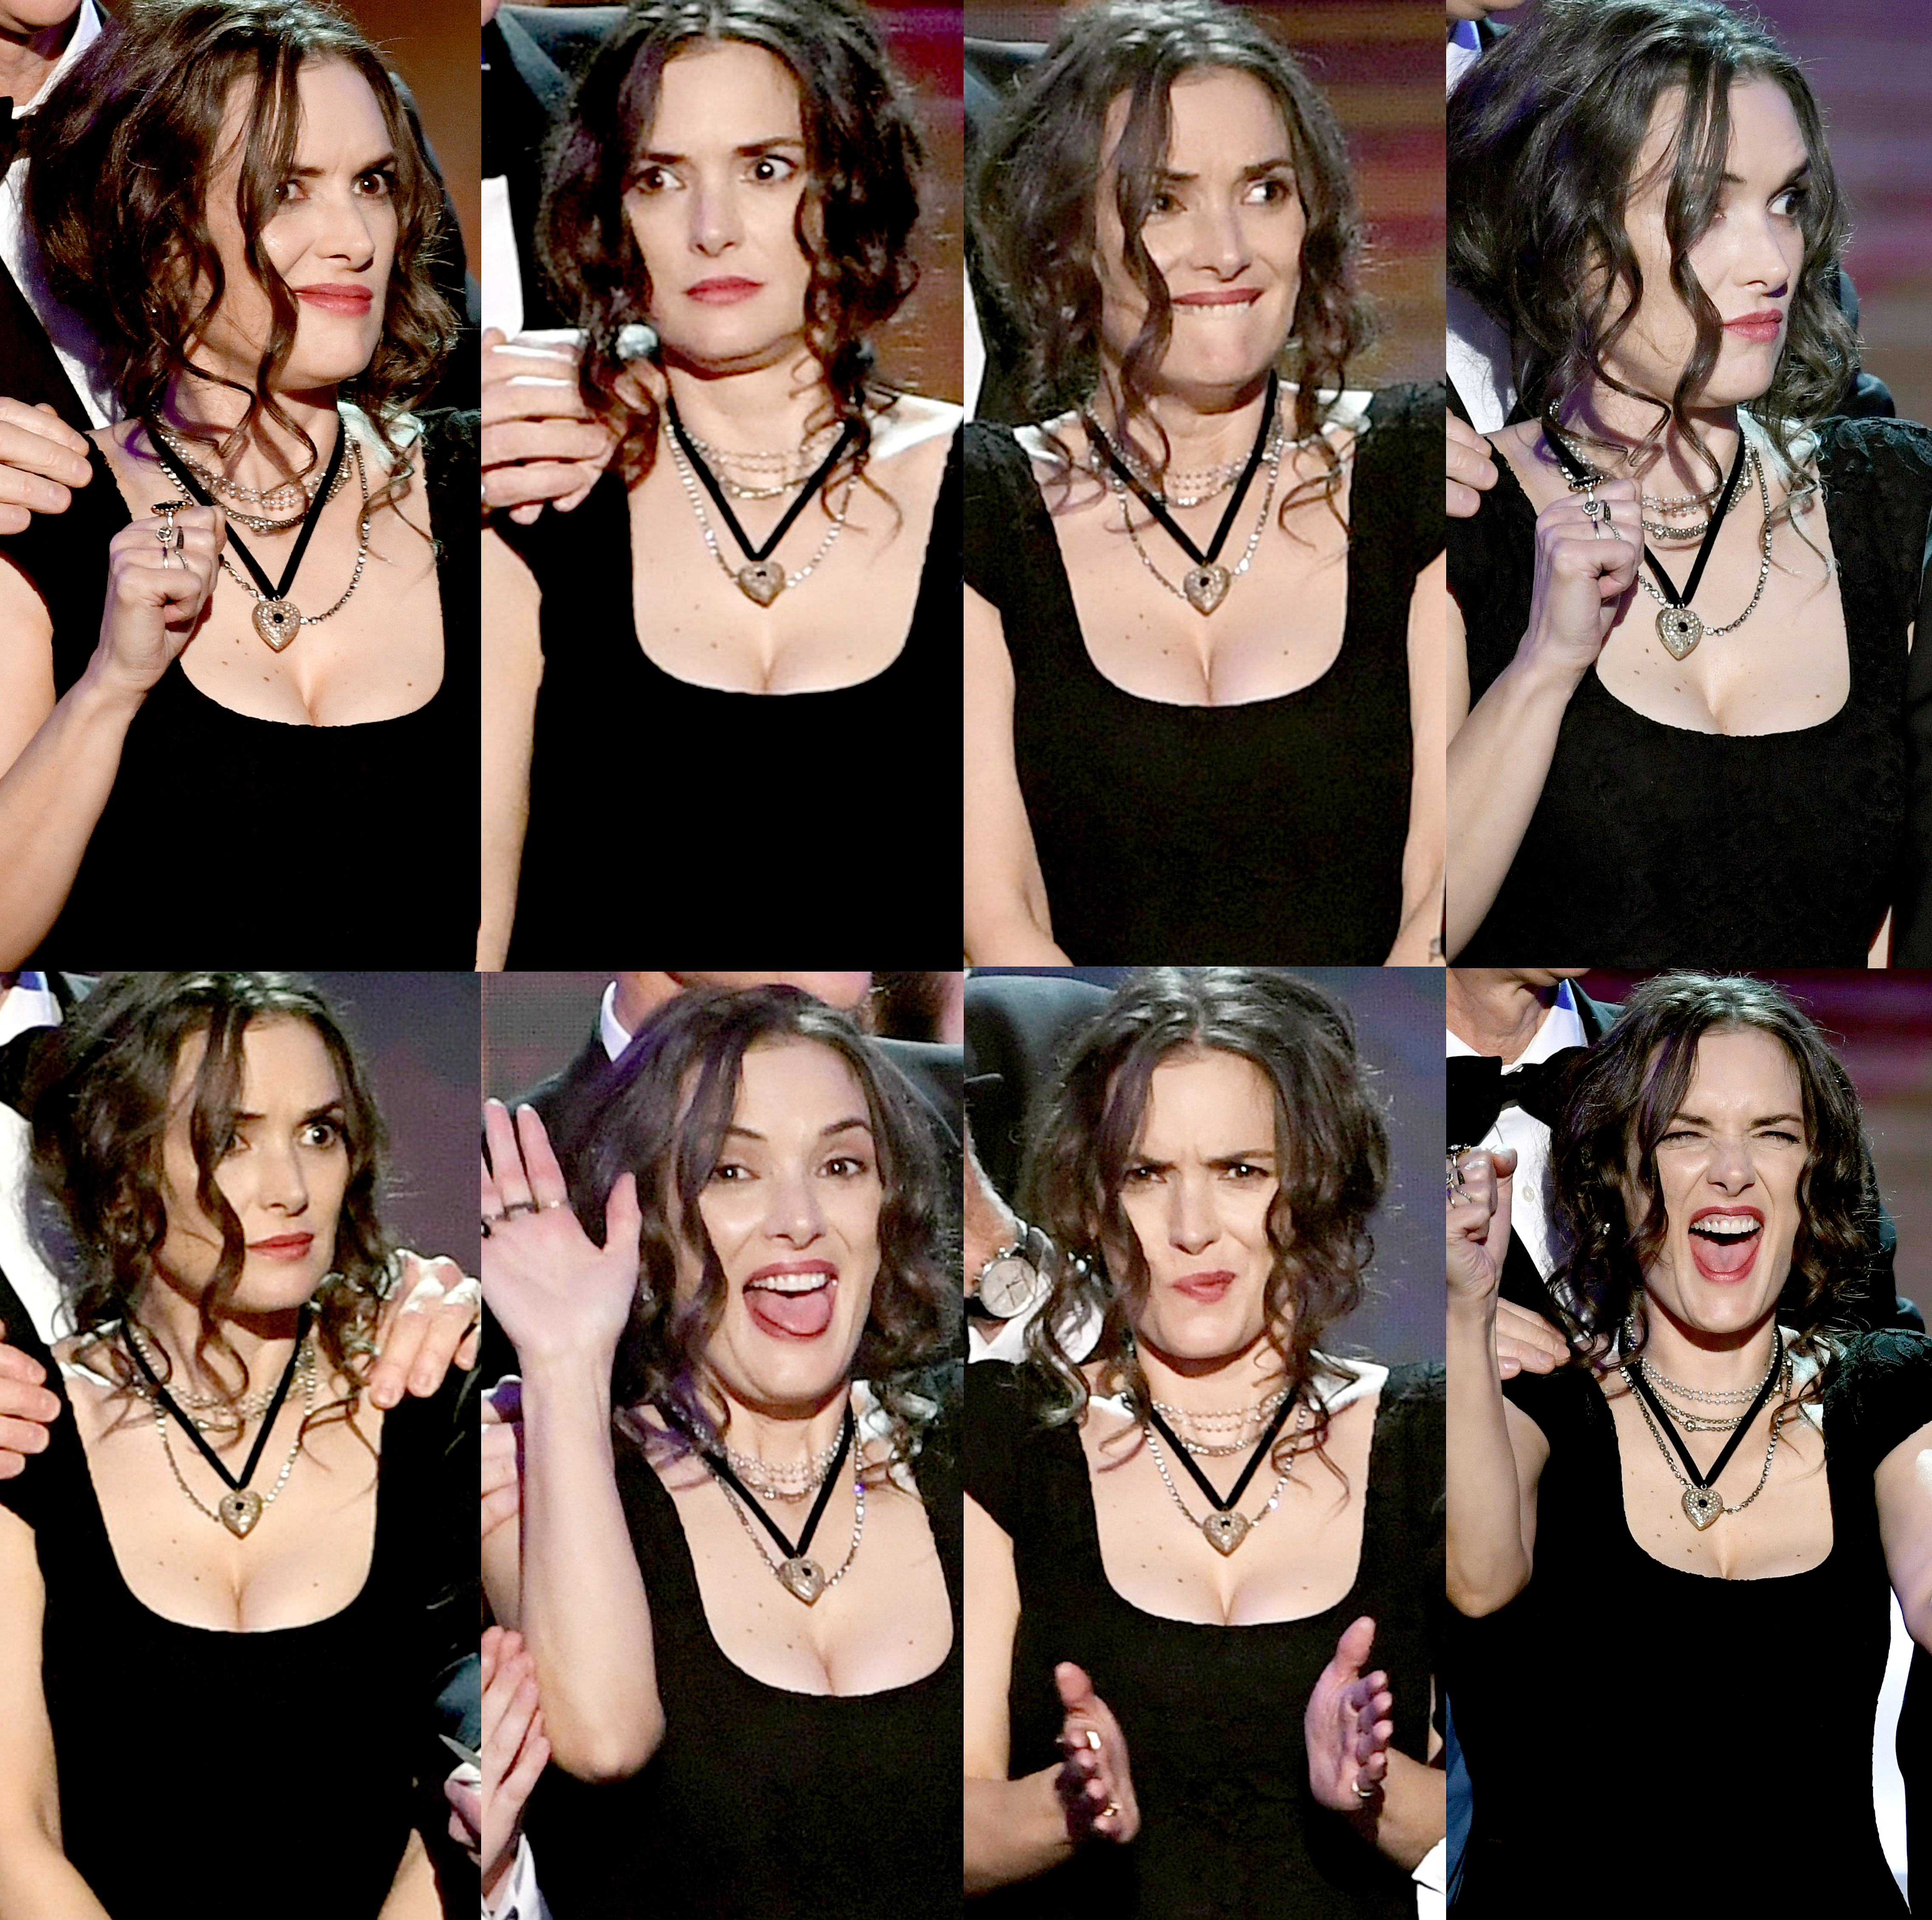 Winona Ryder's facial expressions as she reacts to actor David Harbour's acceptance speech as their Netflix series 'Stranger Things' wins the Outstanding Performance by an Ensemble in a Drama Series onstage during The 23rd Annual Screen Actors Guild Awards at The Shrine Auditorium on January 29, 2017 in Los Angeles, California.